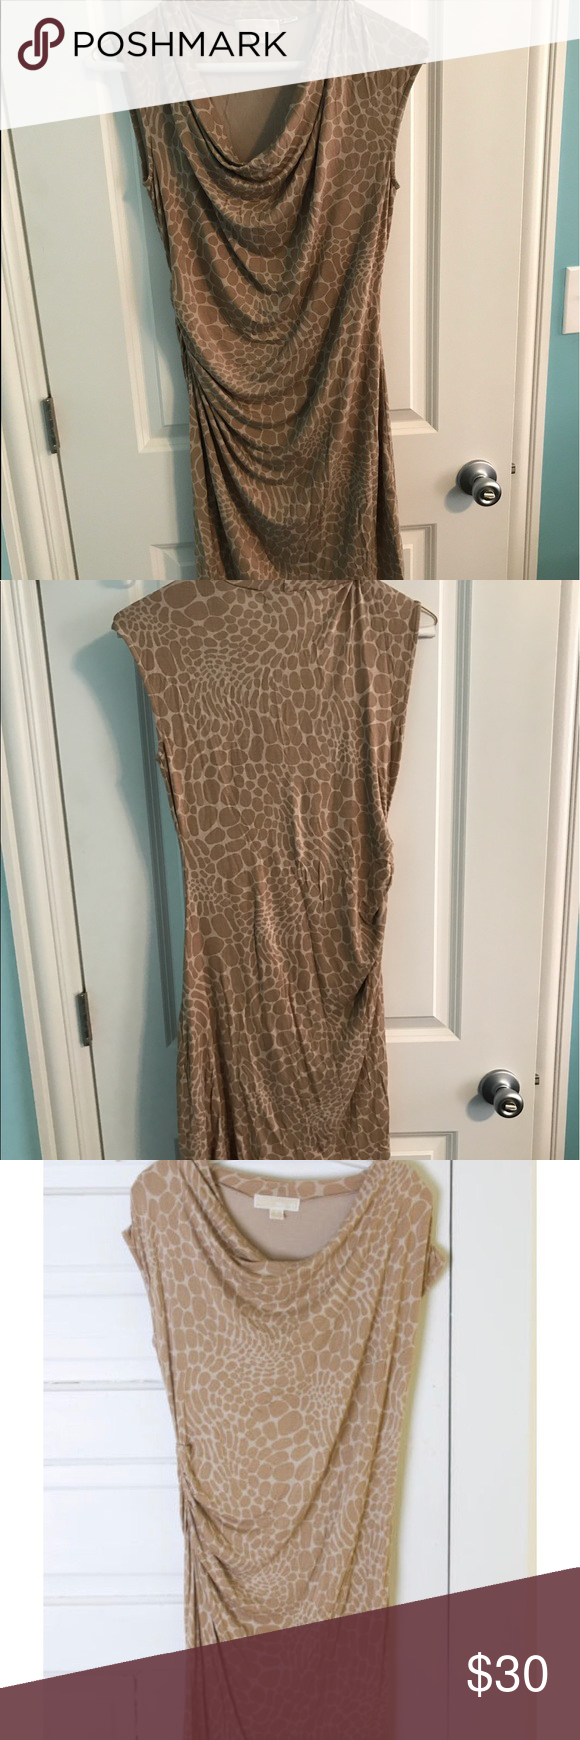 Michael Kors Stretchy Tan Cowl Neck Giraffe Print Gorgeous dress by Michael Kors in size medium .Super cute tan and taupe giraffe print pattern. Stretchy jersey knit style in 95% rayon, 5% spandex. Cowl neck and ruching around waist on one side . The sleeves are almost like a combination between cap sleeves and sleeveless--very small cap sleeves I guess I would call them. It's in great condition!   (has plenty of stretch) Michael Kors Dresses Midi